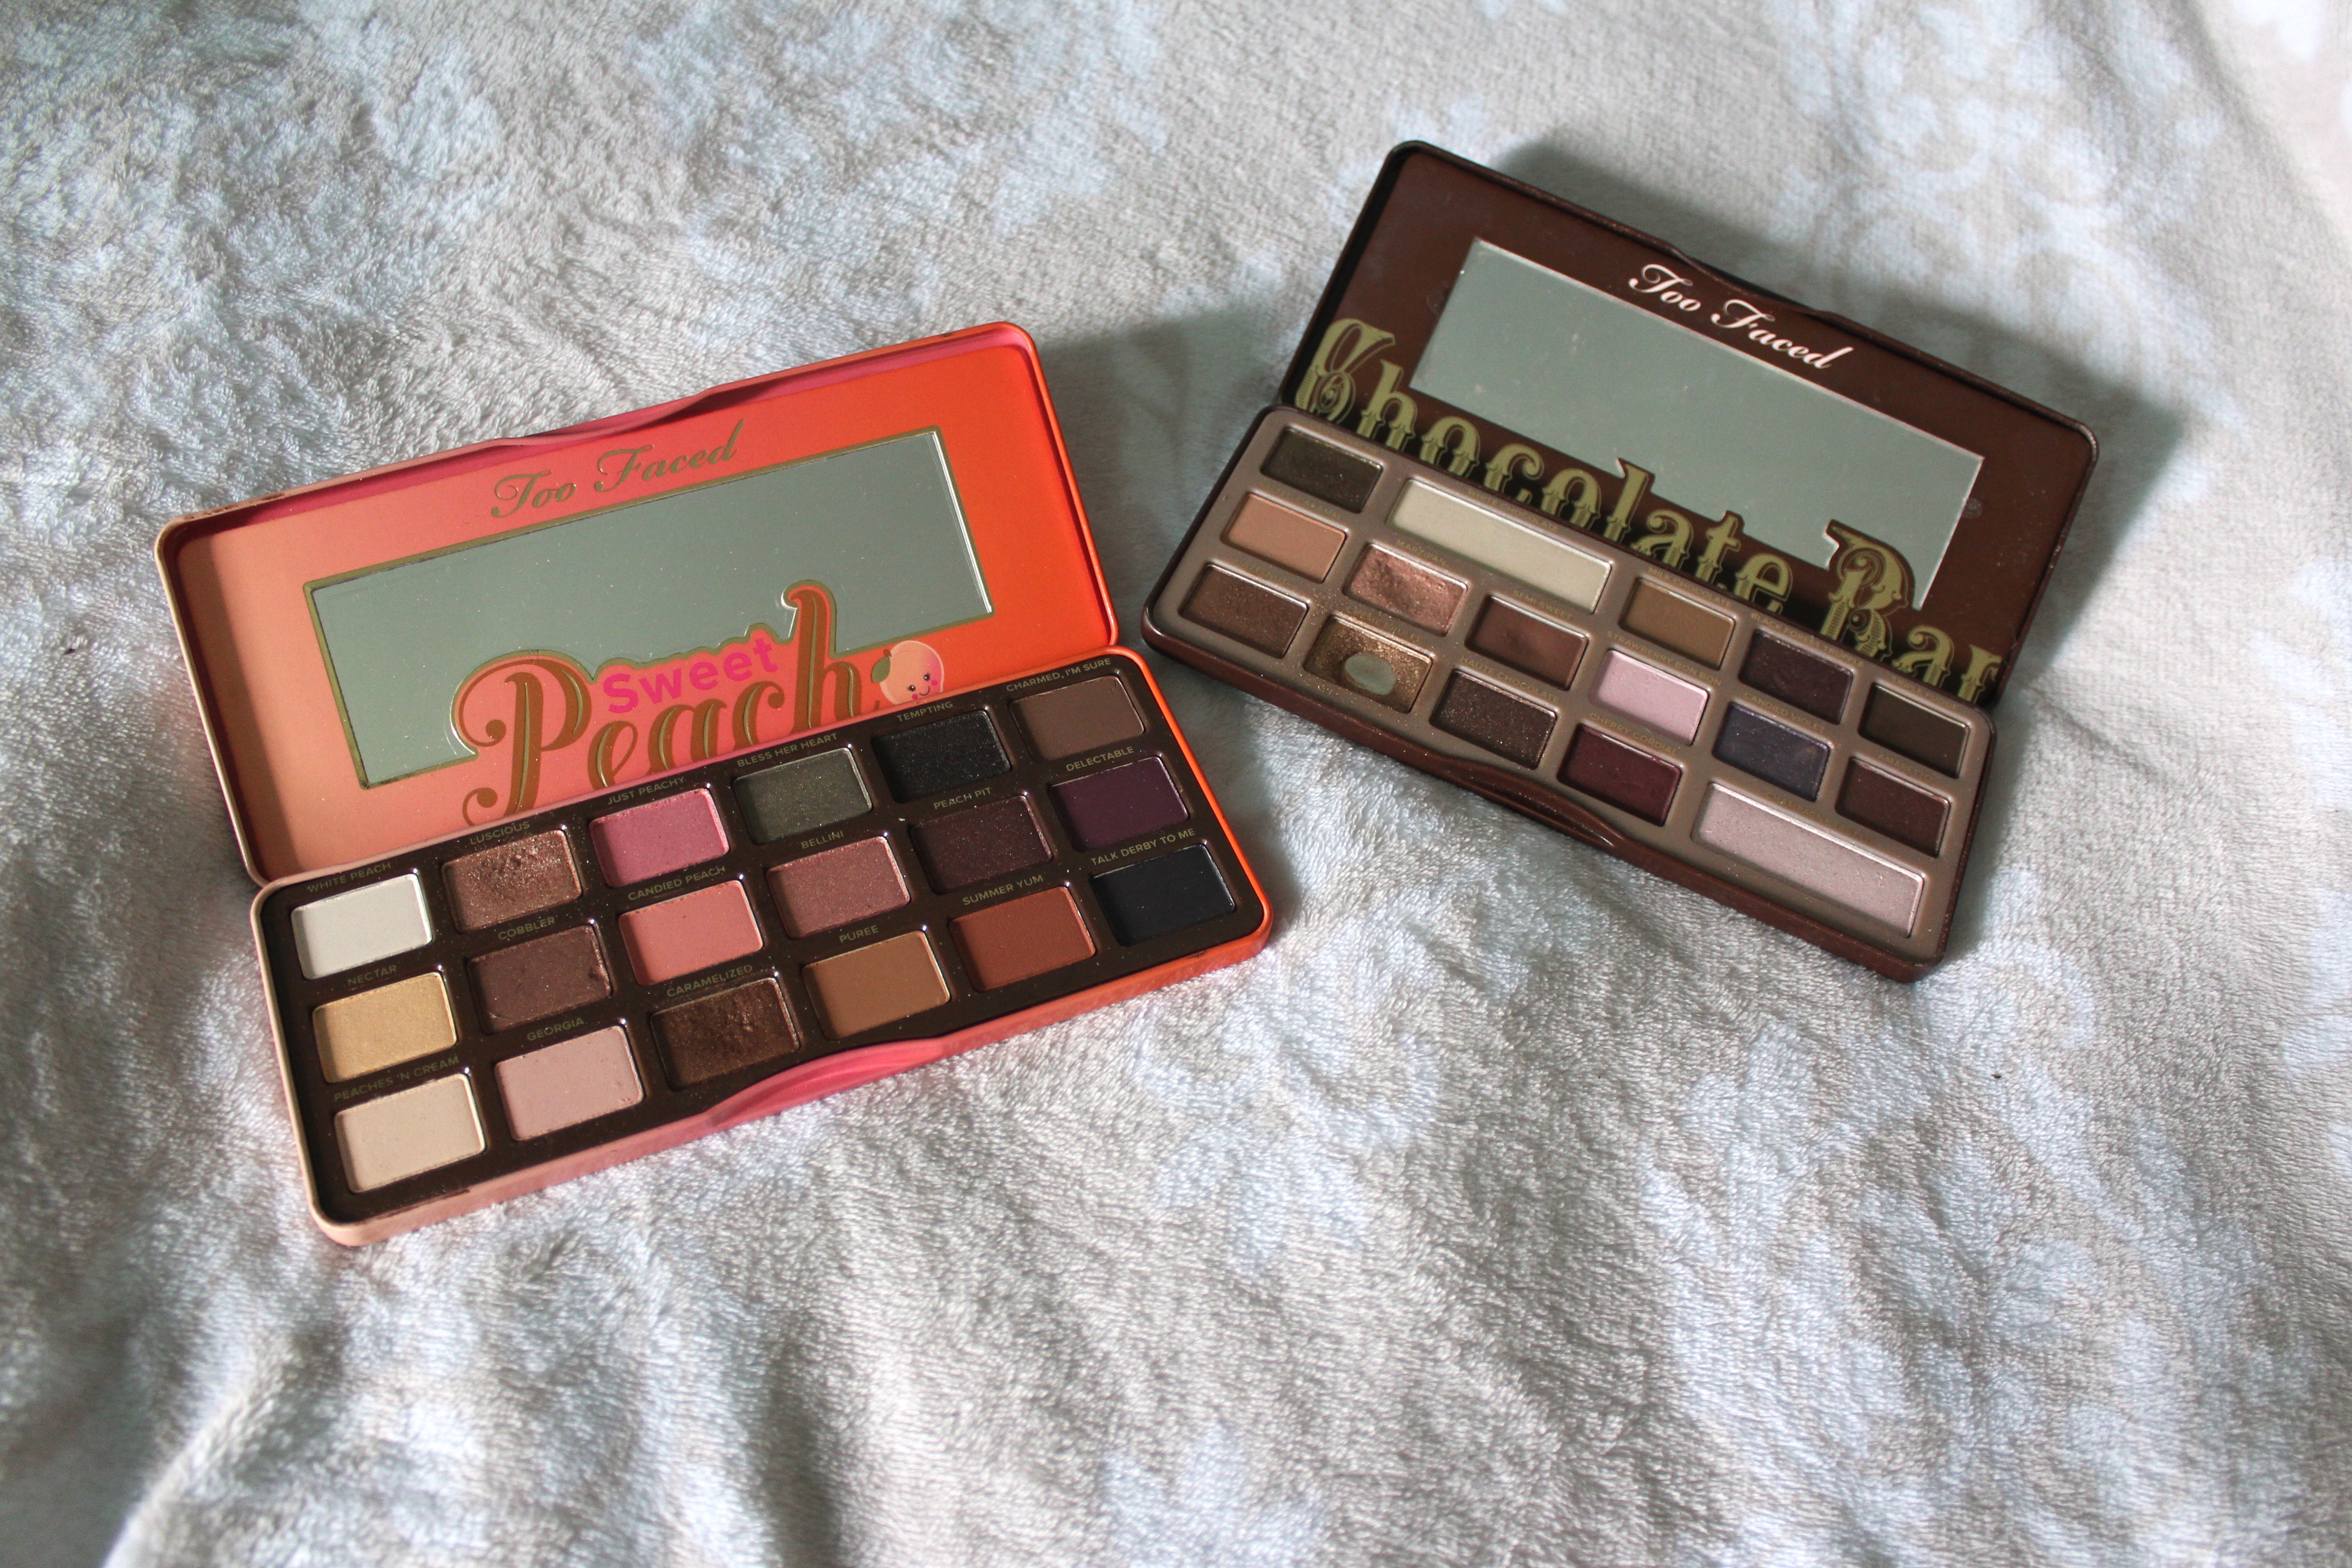 Too Faced Chocolate bar palette and Sweet peach palette